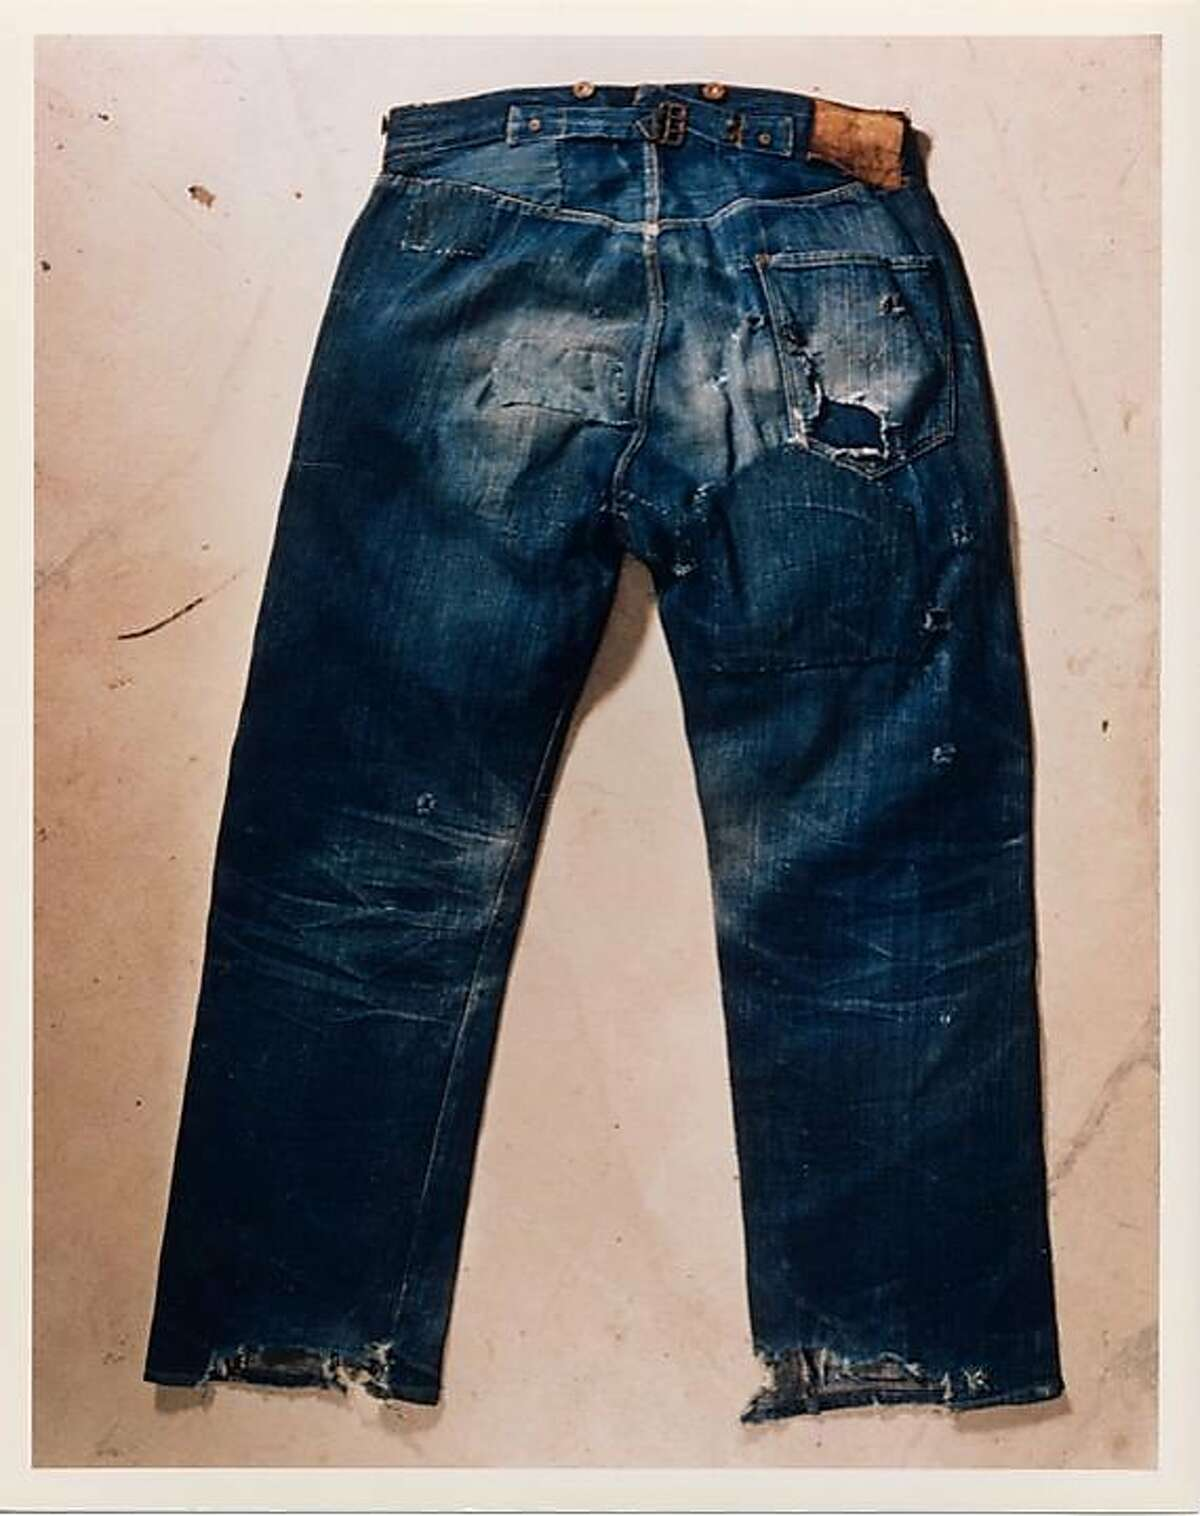 1890: A pair of cowboy 501s from the 1800s preserved in the Levi�s San Francisco headquarters� archives. The authentic �spur bites� at the bottom hemline indicate that a working cowboy tore them with his boot spurs. Today, denim companies replicate such rips, fading and other distressing as part of a jean�s on-trend look.